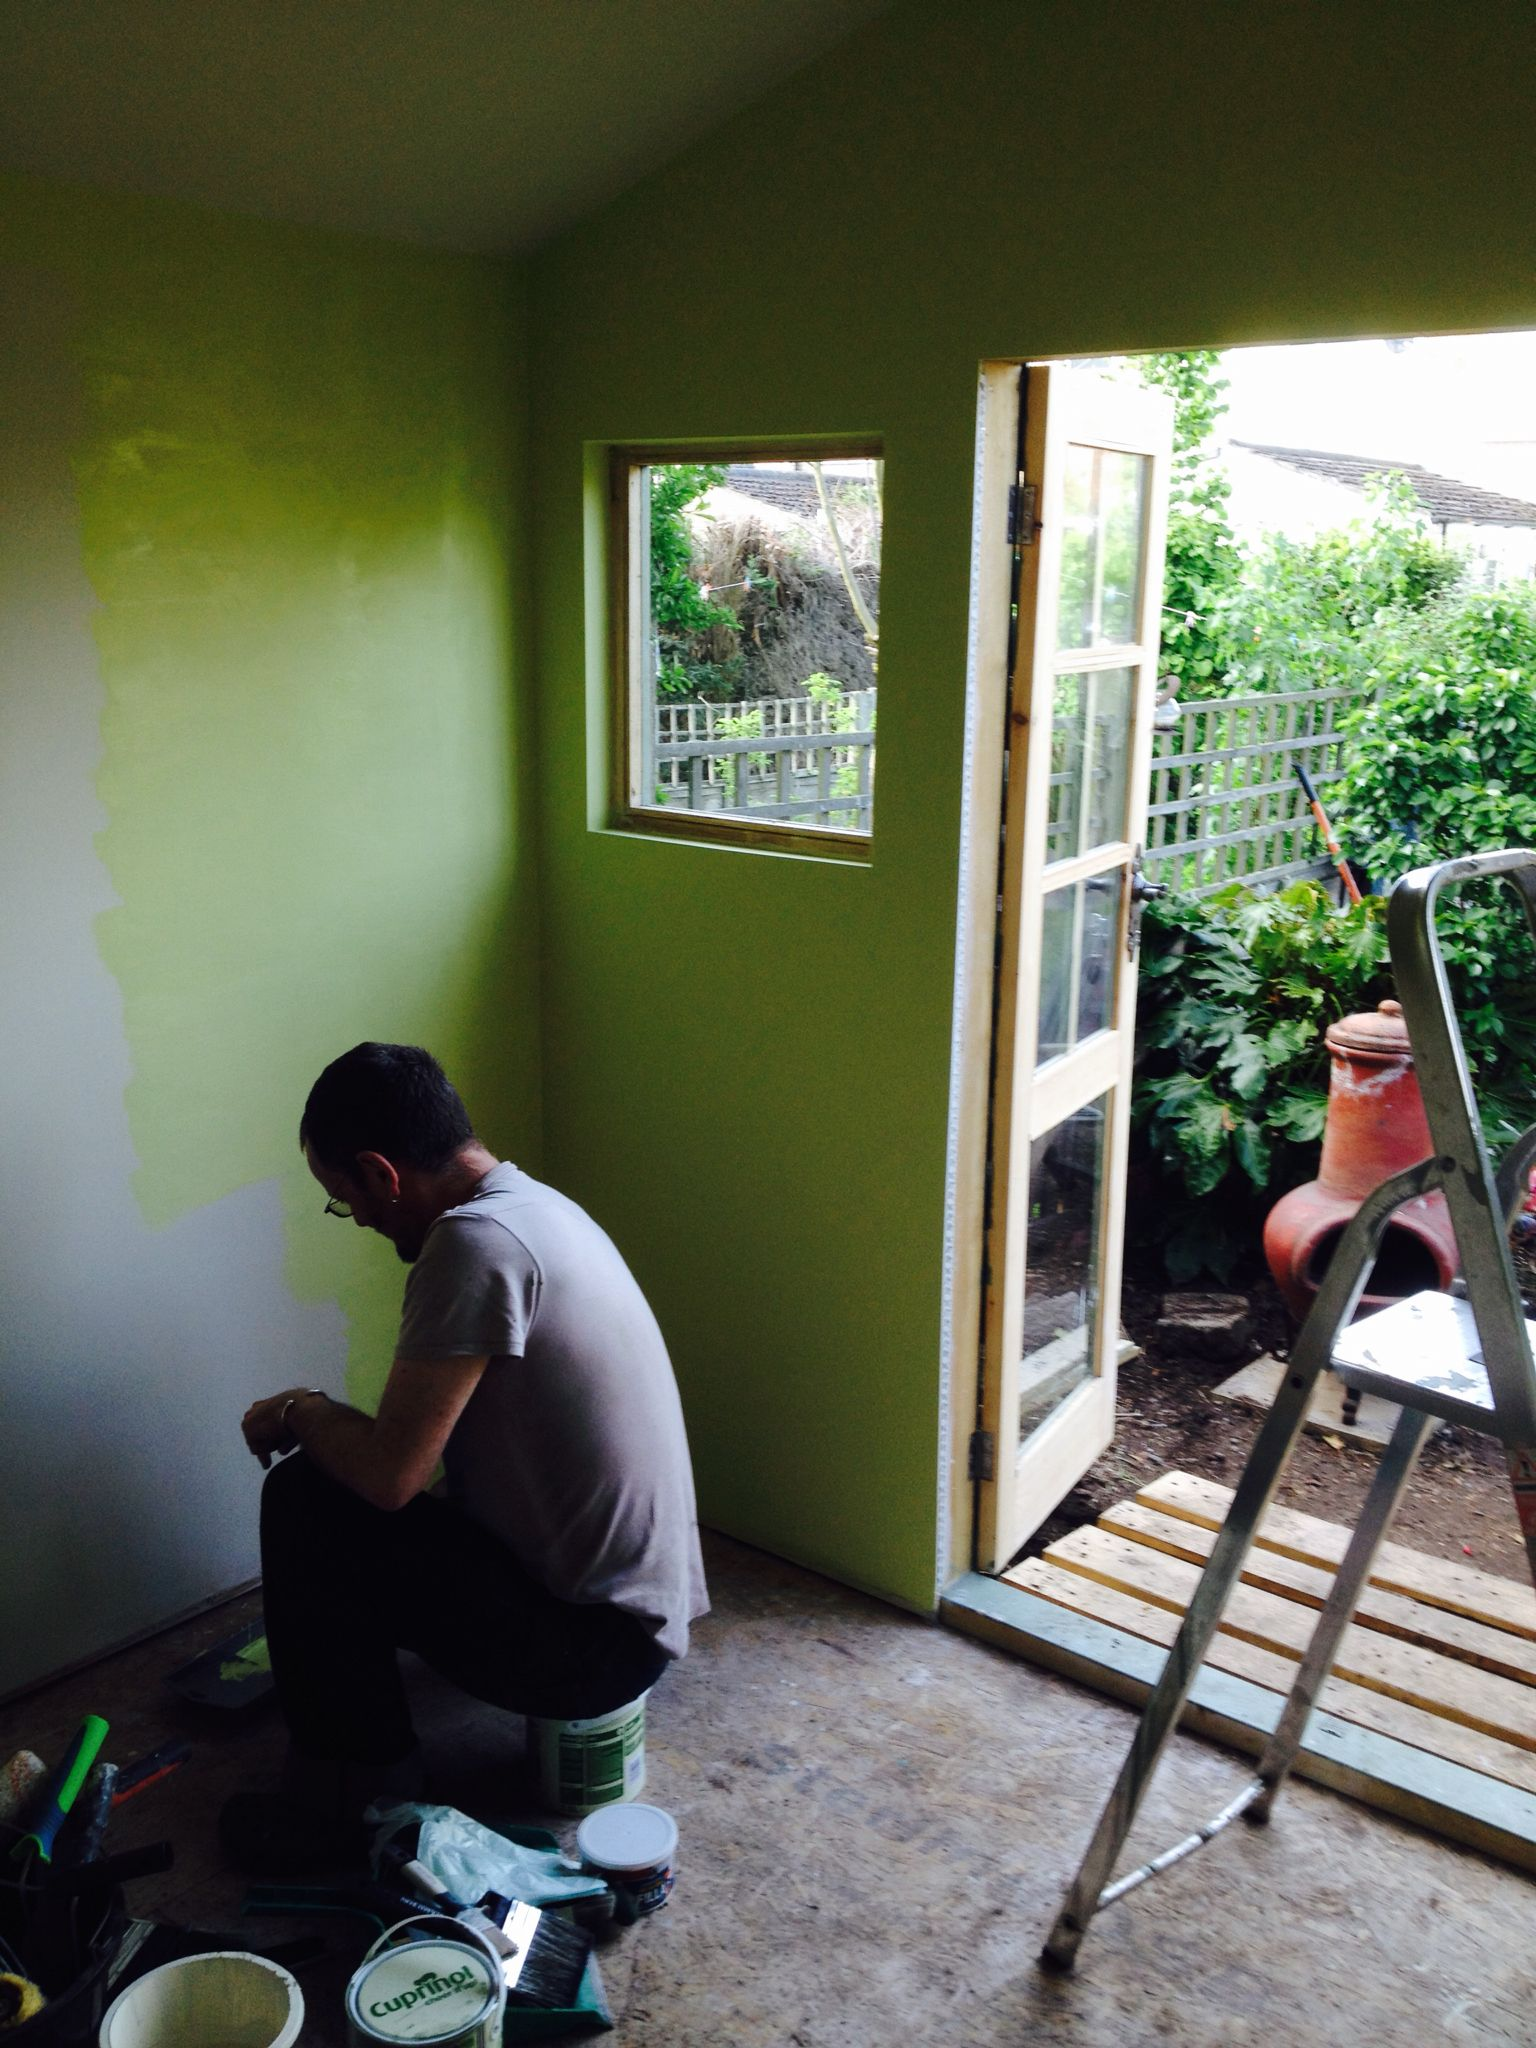 Only 2 Coats To Go Summer House House To Go